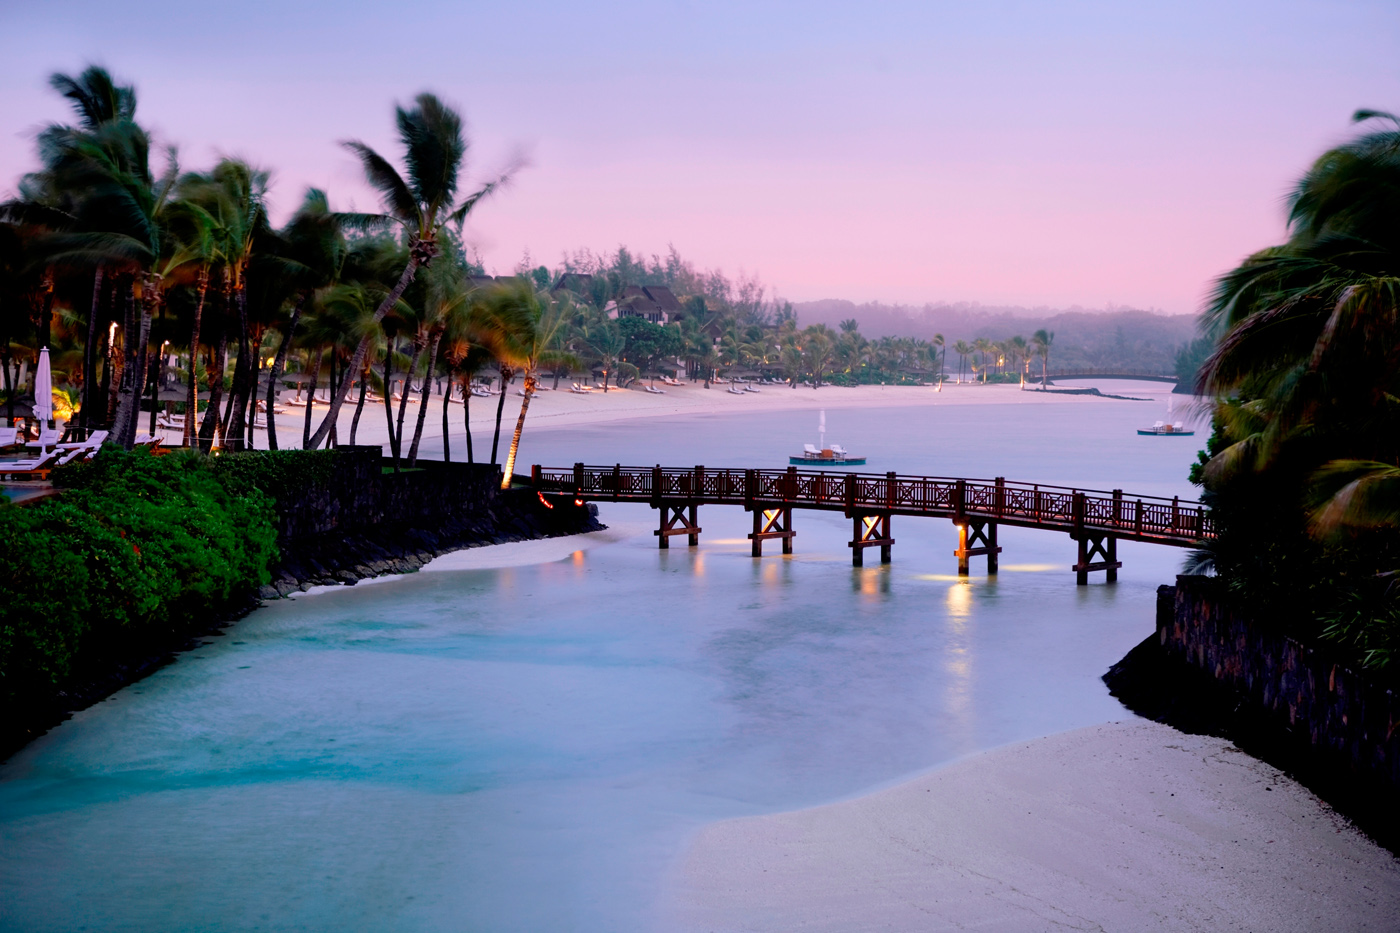 Exotic Islands: THE EXOTIC ISLAND OF MAURITIUS NEAR SOUTH AFRICA